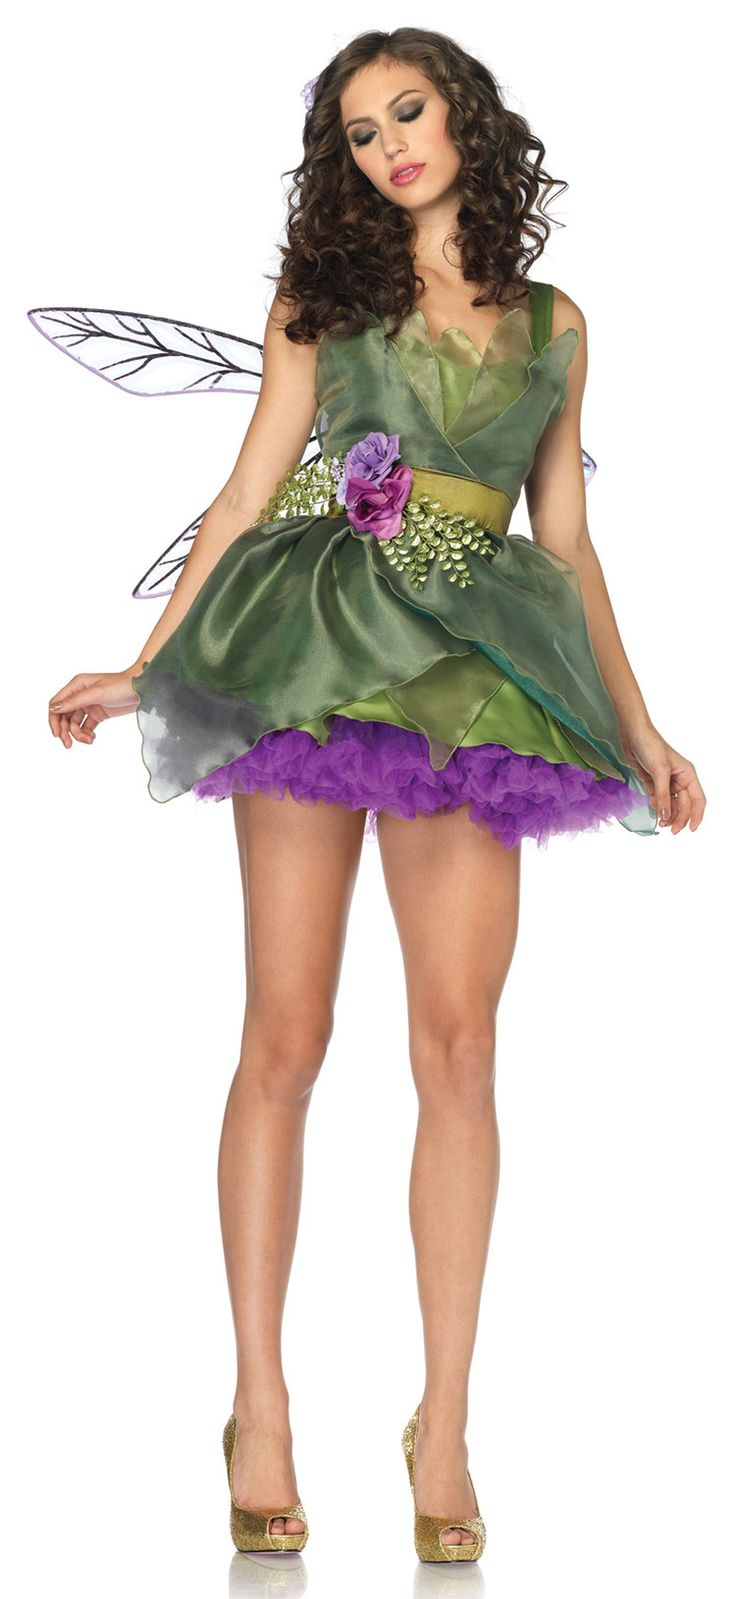 Black sparkling fairy tale dress up game